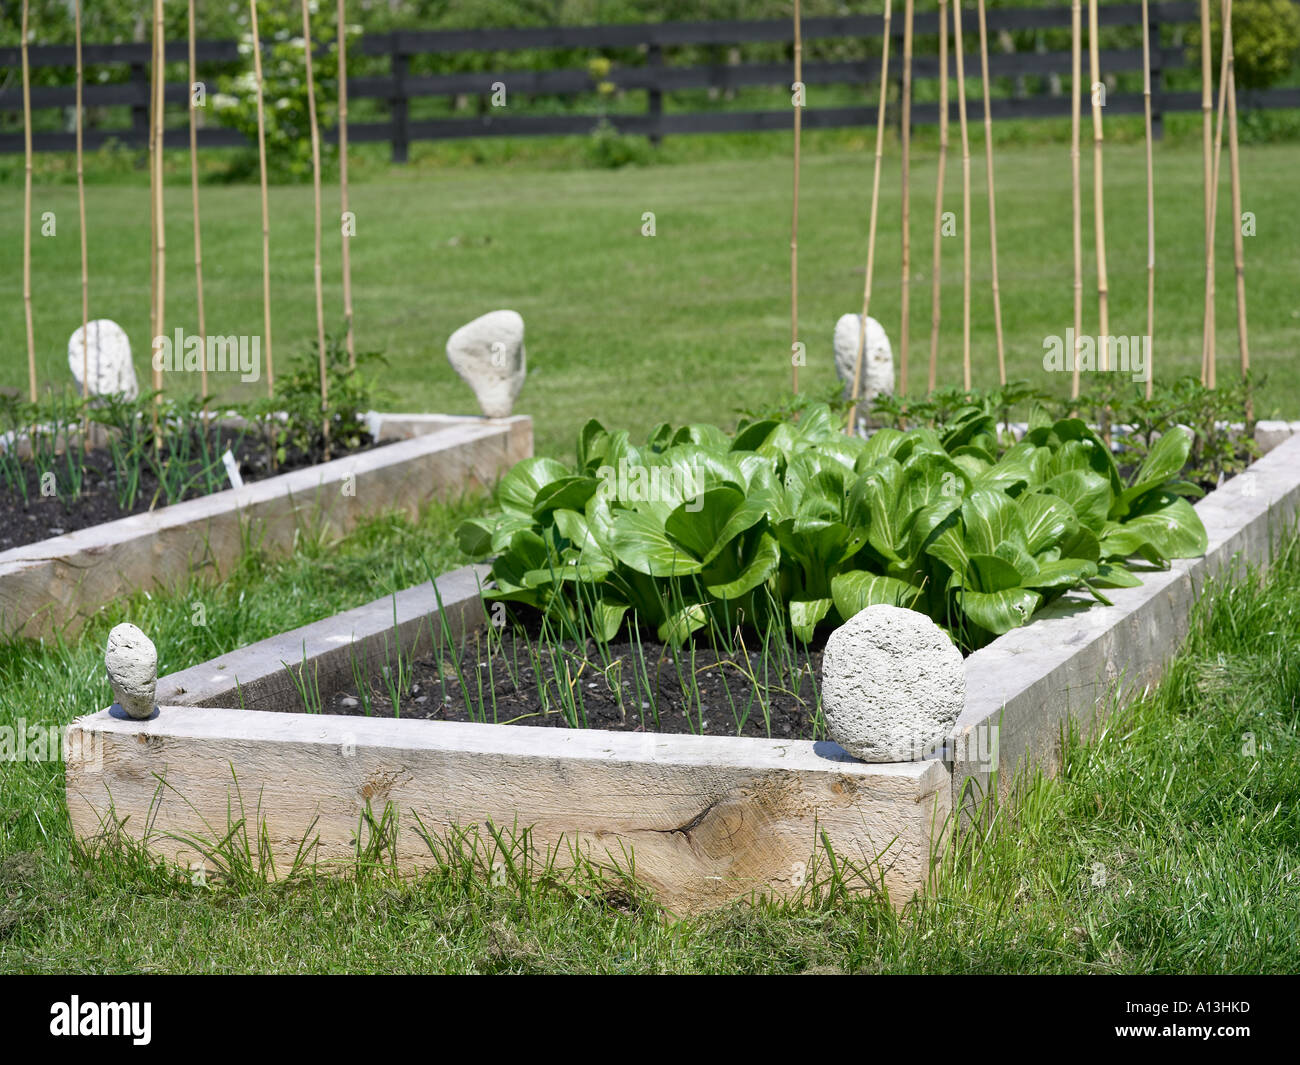 Raised Vegetable Bed With Pumice Stone Edges Stock Photo 5789692